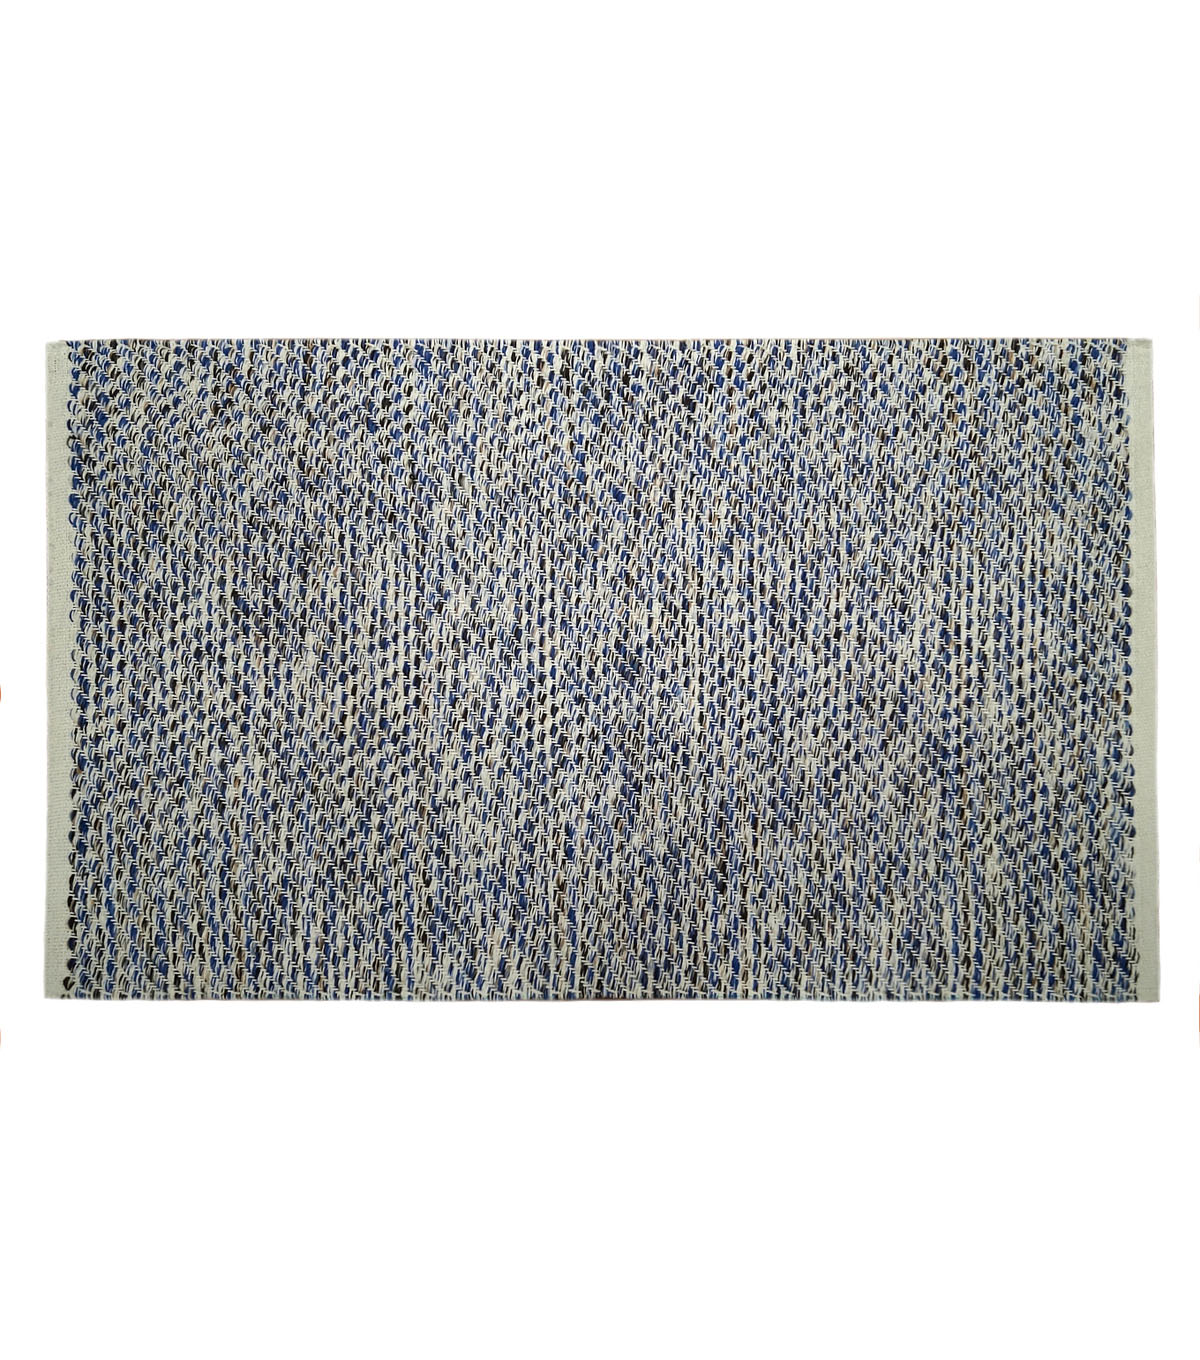 Hudson 43 Global Journey Cotton Textured Rug-Blue